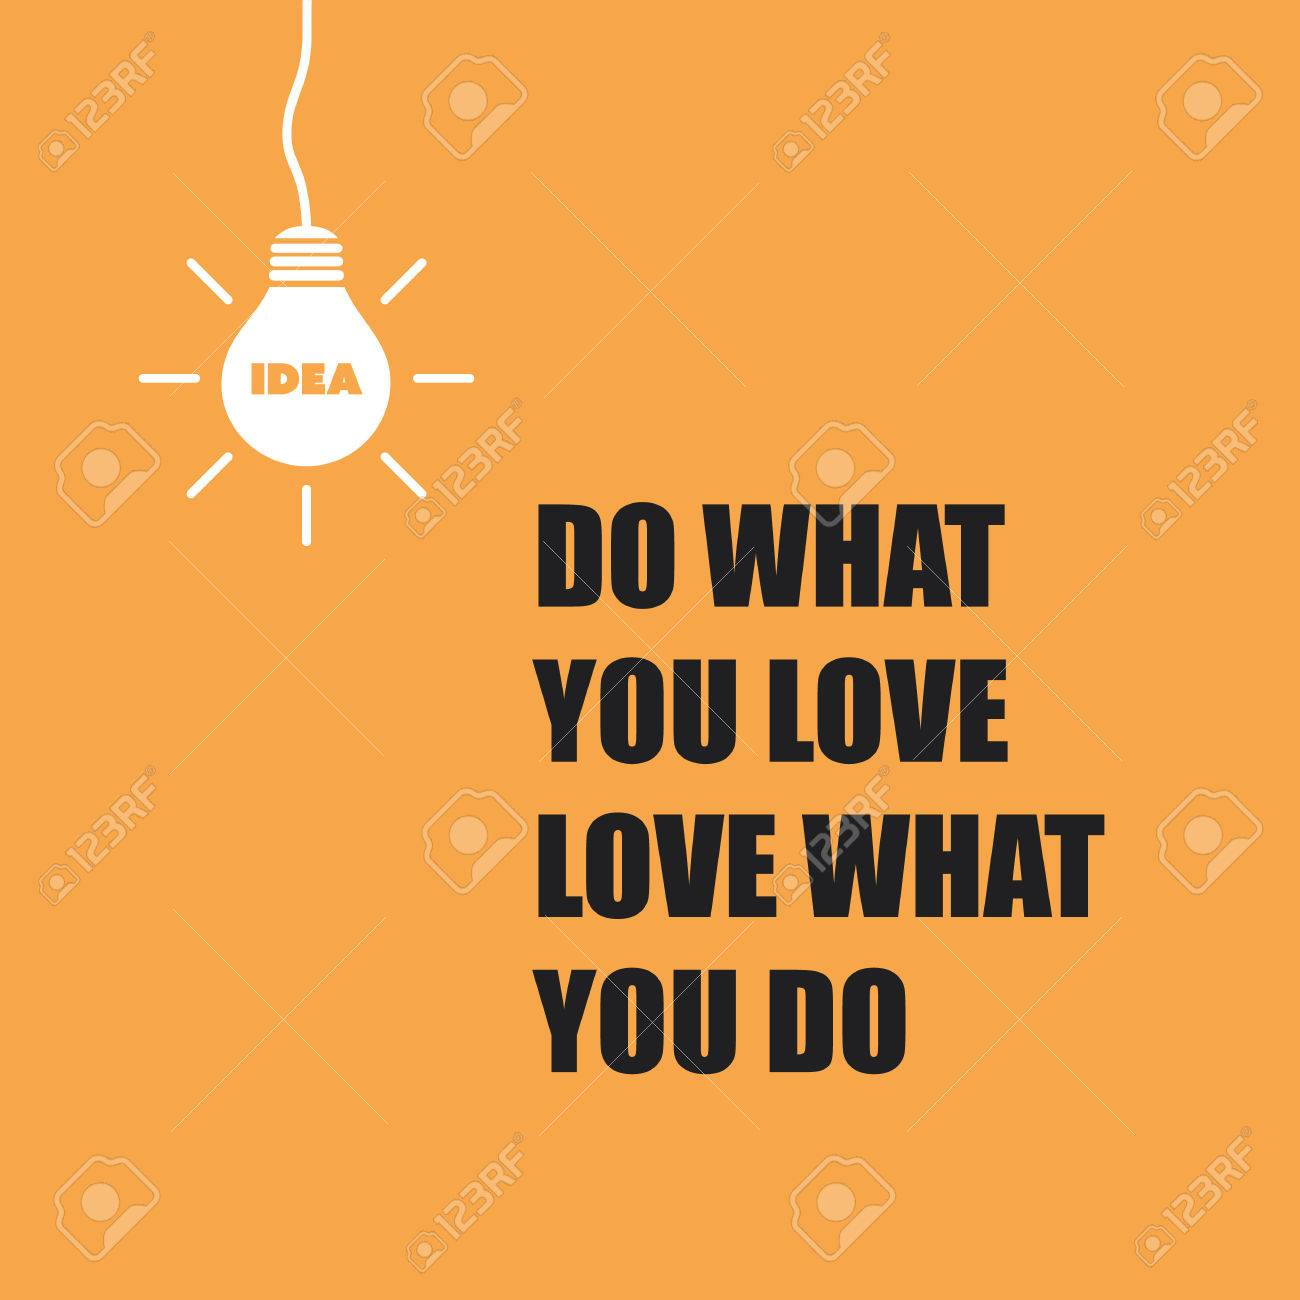 Do What You Love Love What You Do Quote Do What You Love Love What You Do  Inspirational Quote Slogan